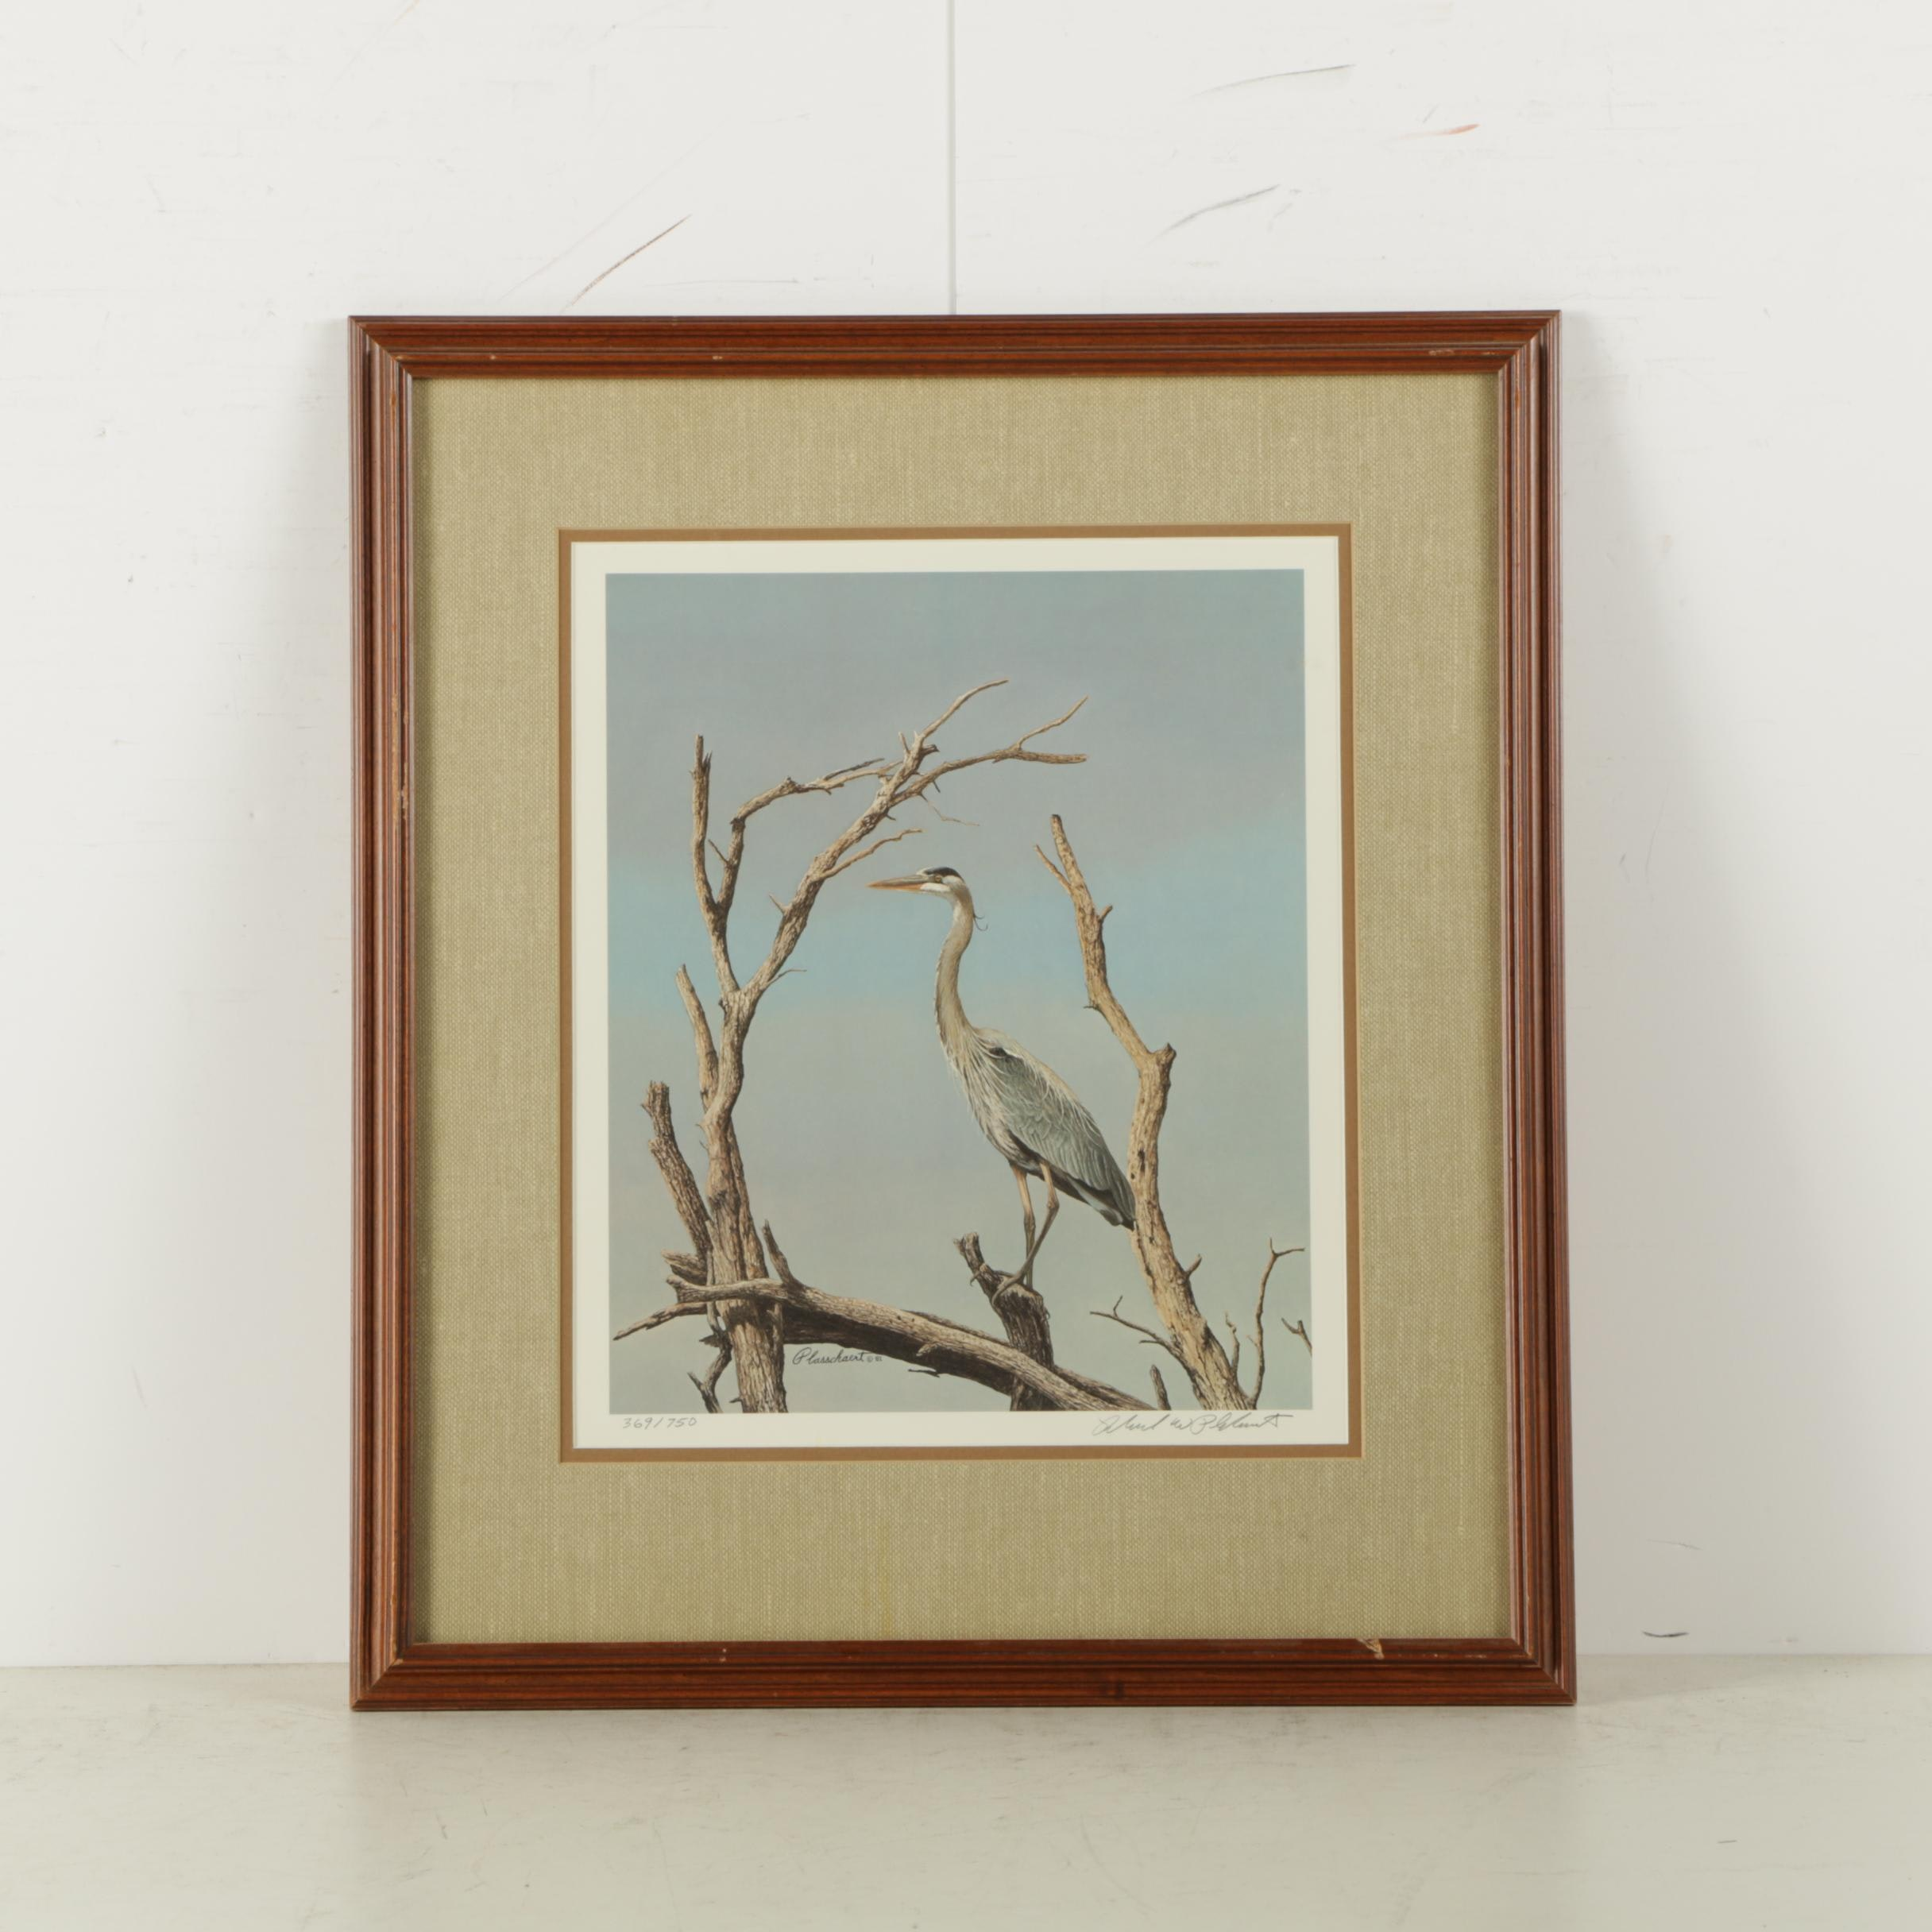 Richard Plasschaert Limited Edition Reproduction Print of Heron